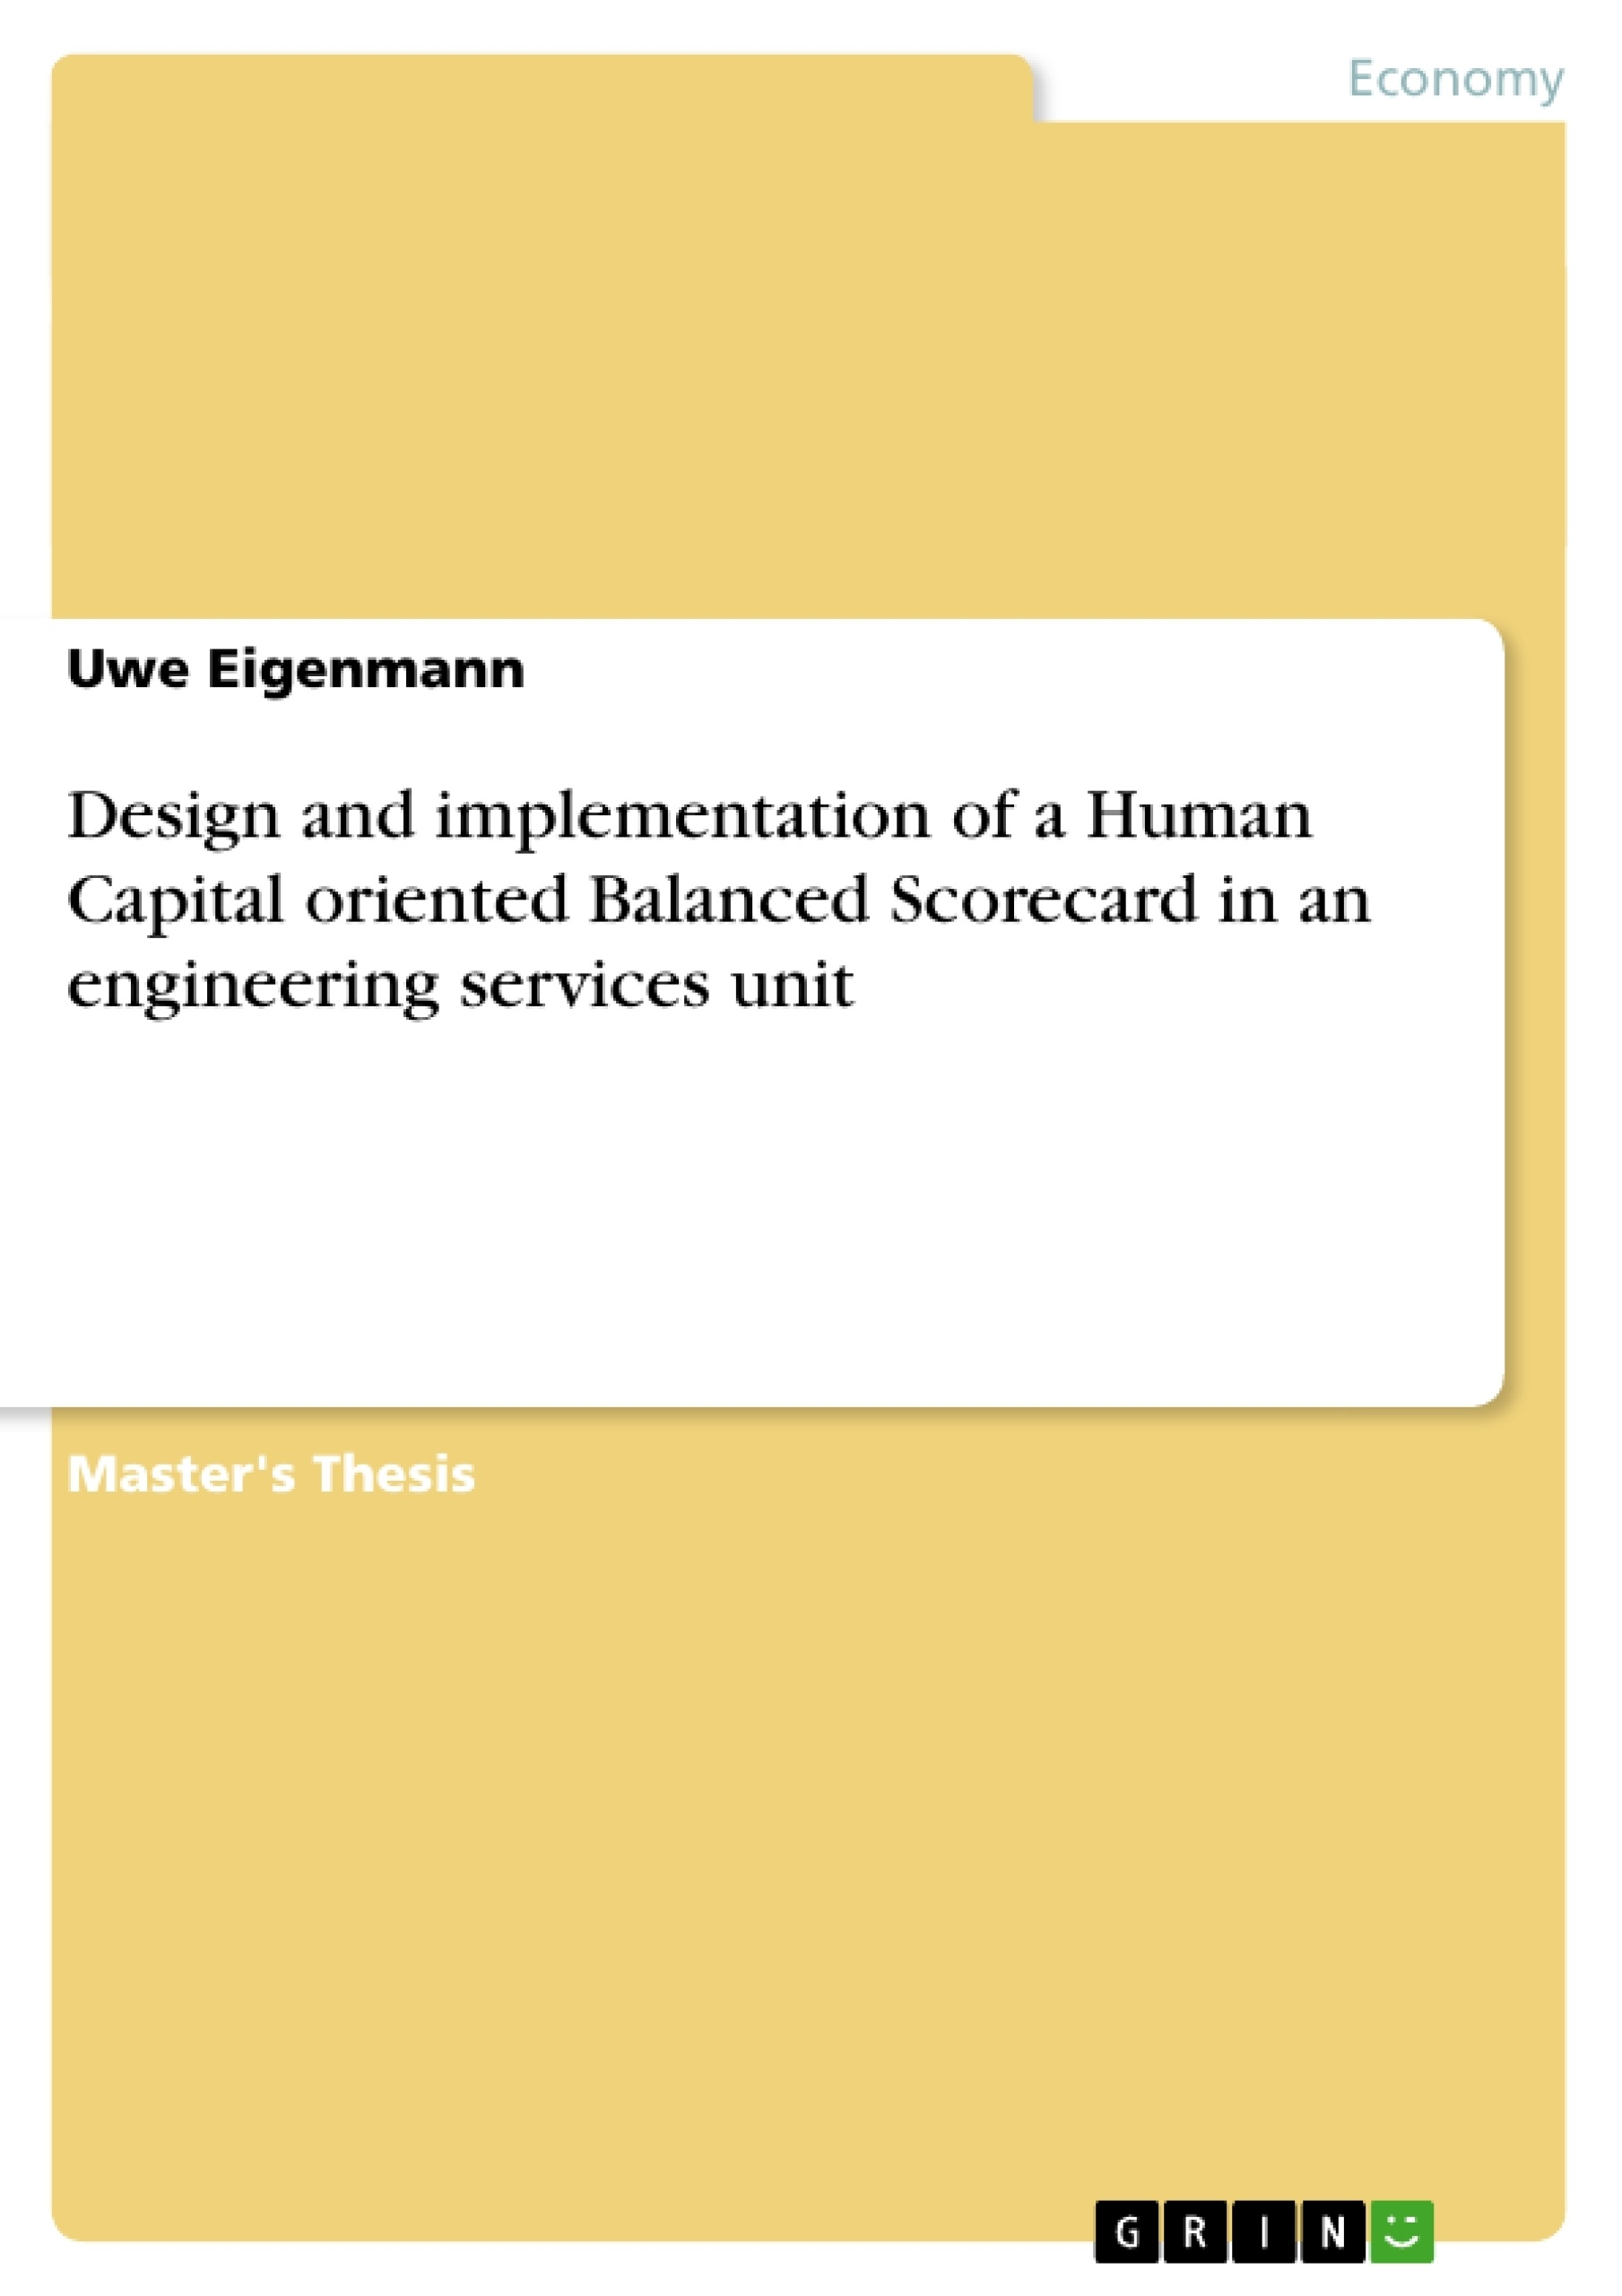 Title: Design and implementation of a Human Capital oriented Balanced Scorecard in an engineering services unit